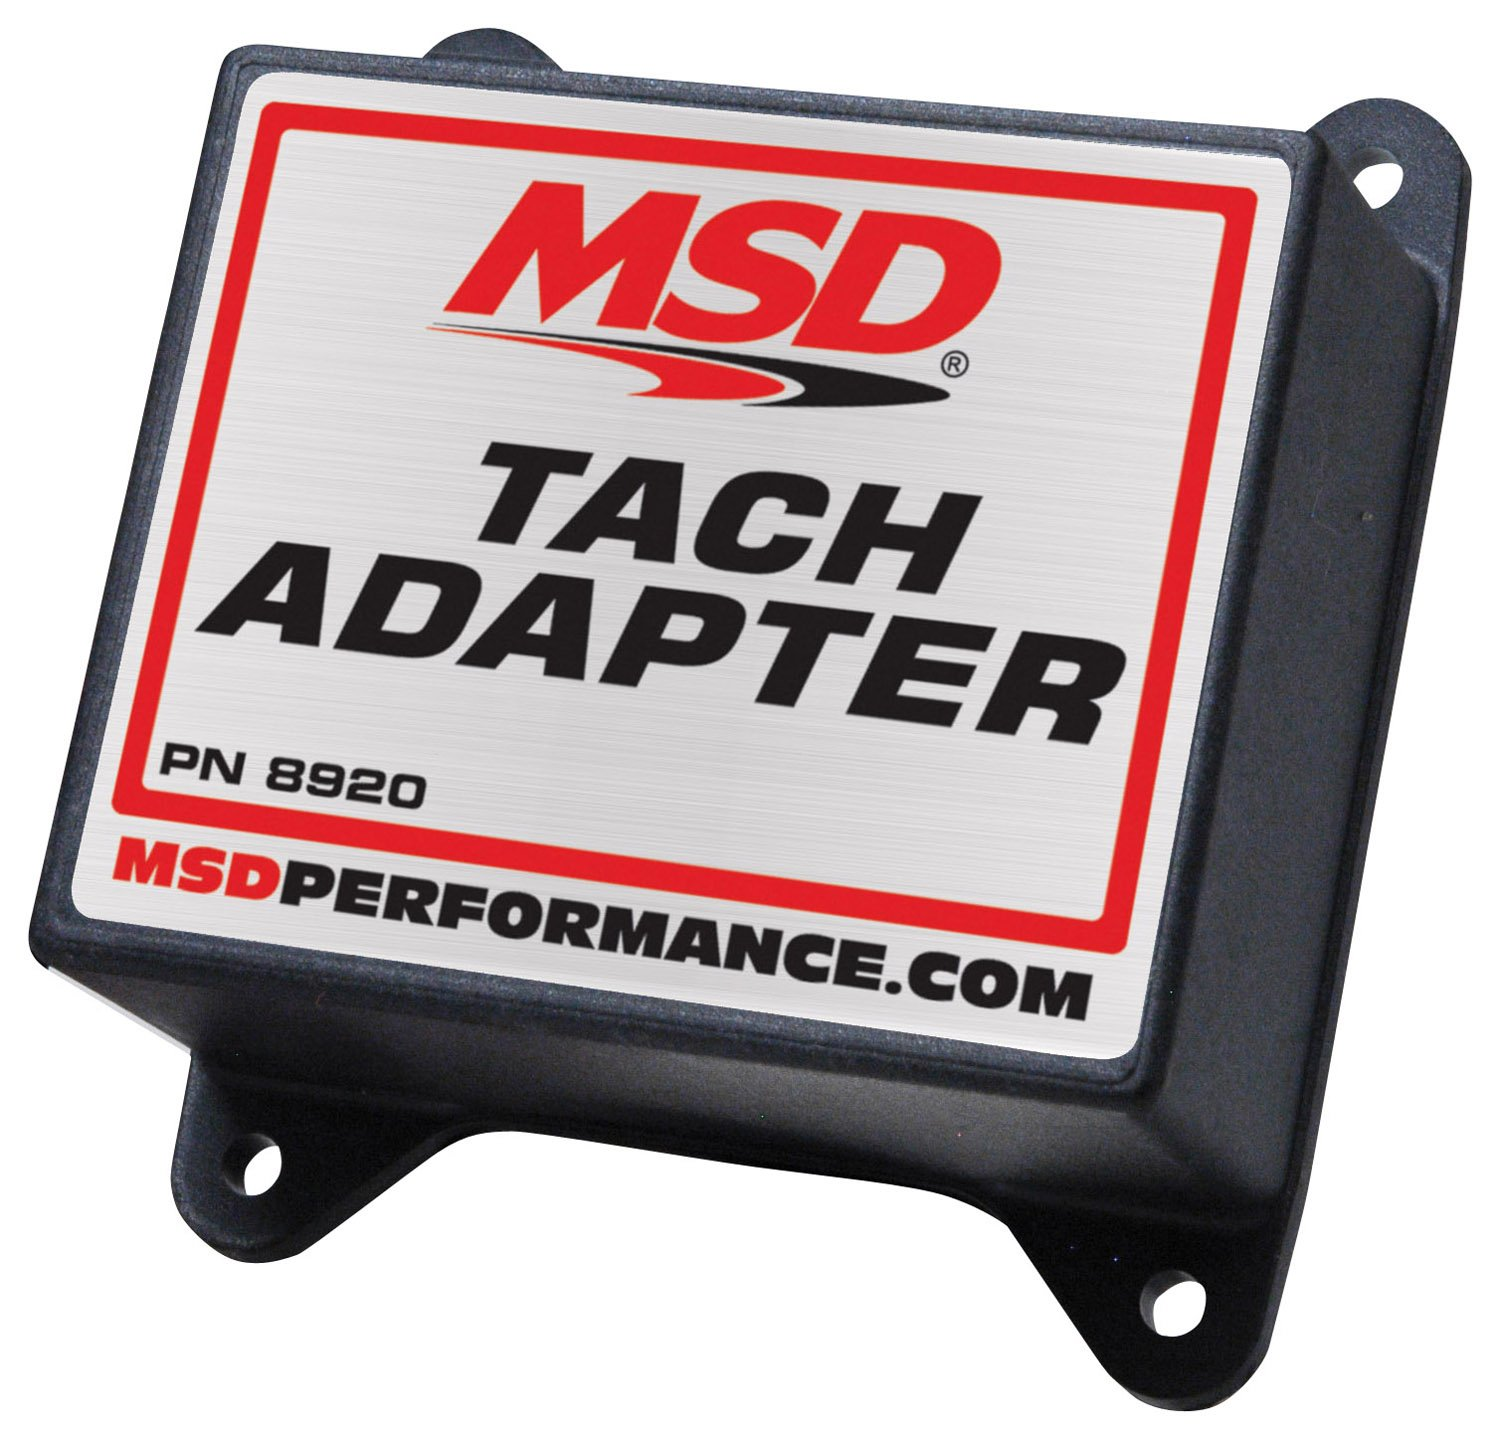 Msd 8920 Tach Adapter Wiring Diagram Good Guide Of Hei Fuel Rh Holley Com 6al 6420 Gm